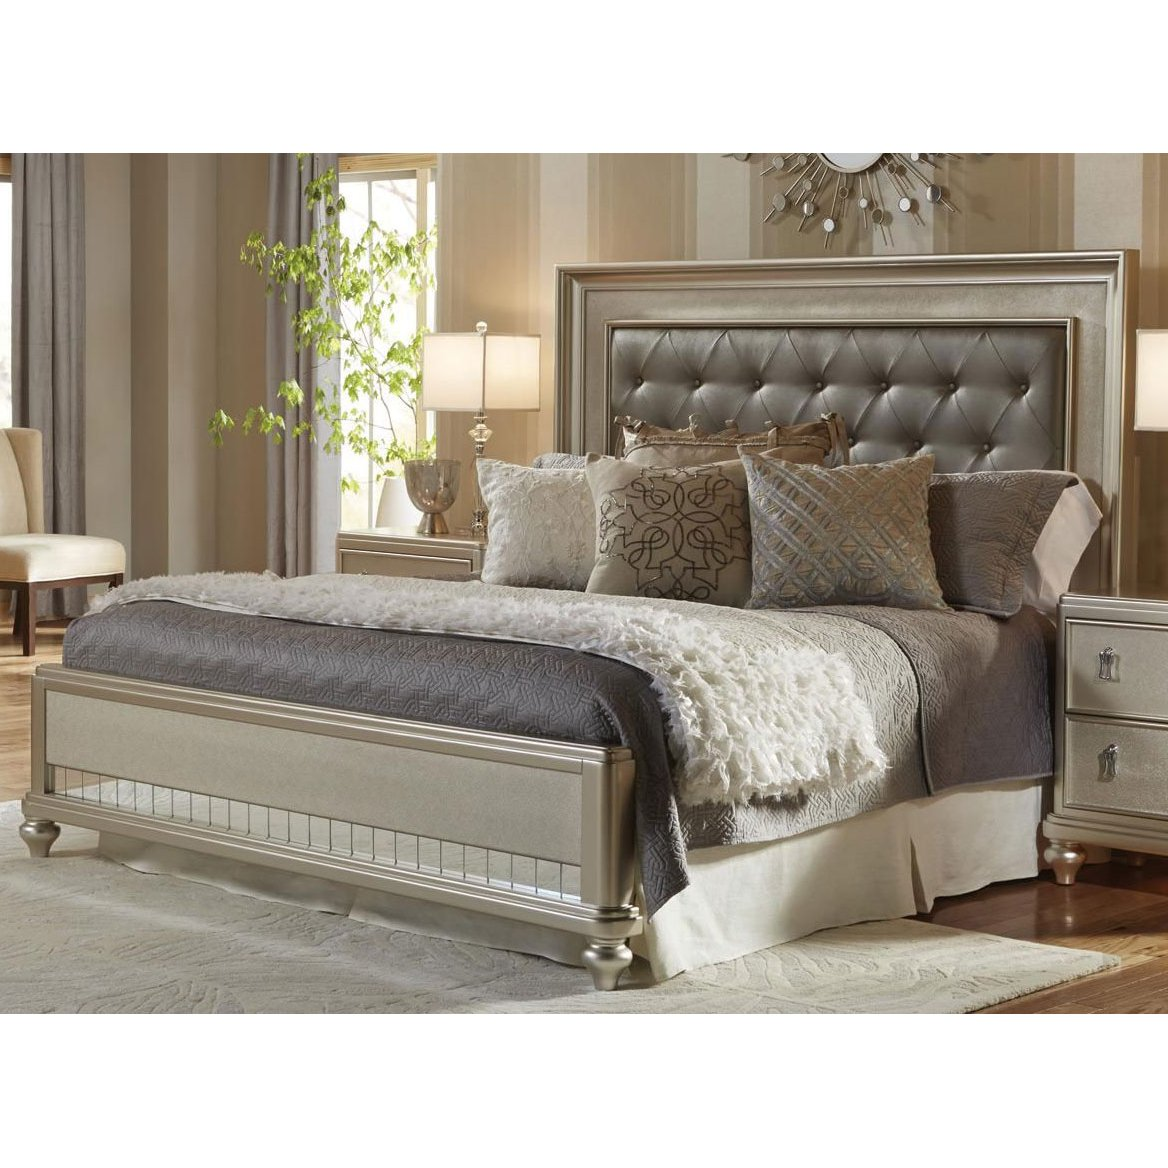 Furniture for your living room, dining room or bedroom! Searching ...